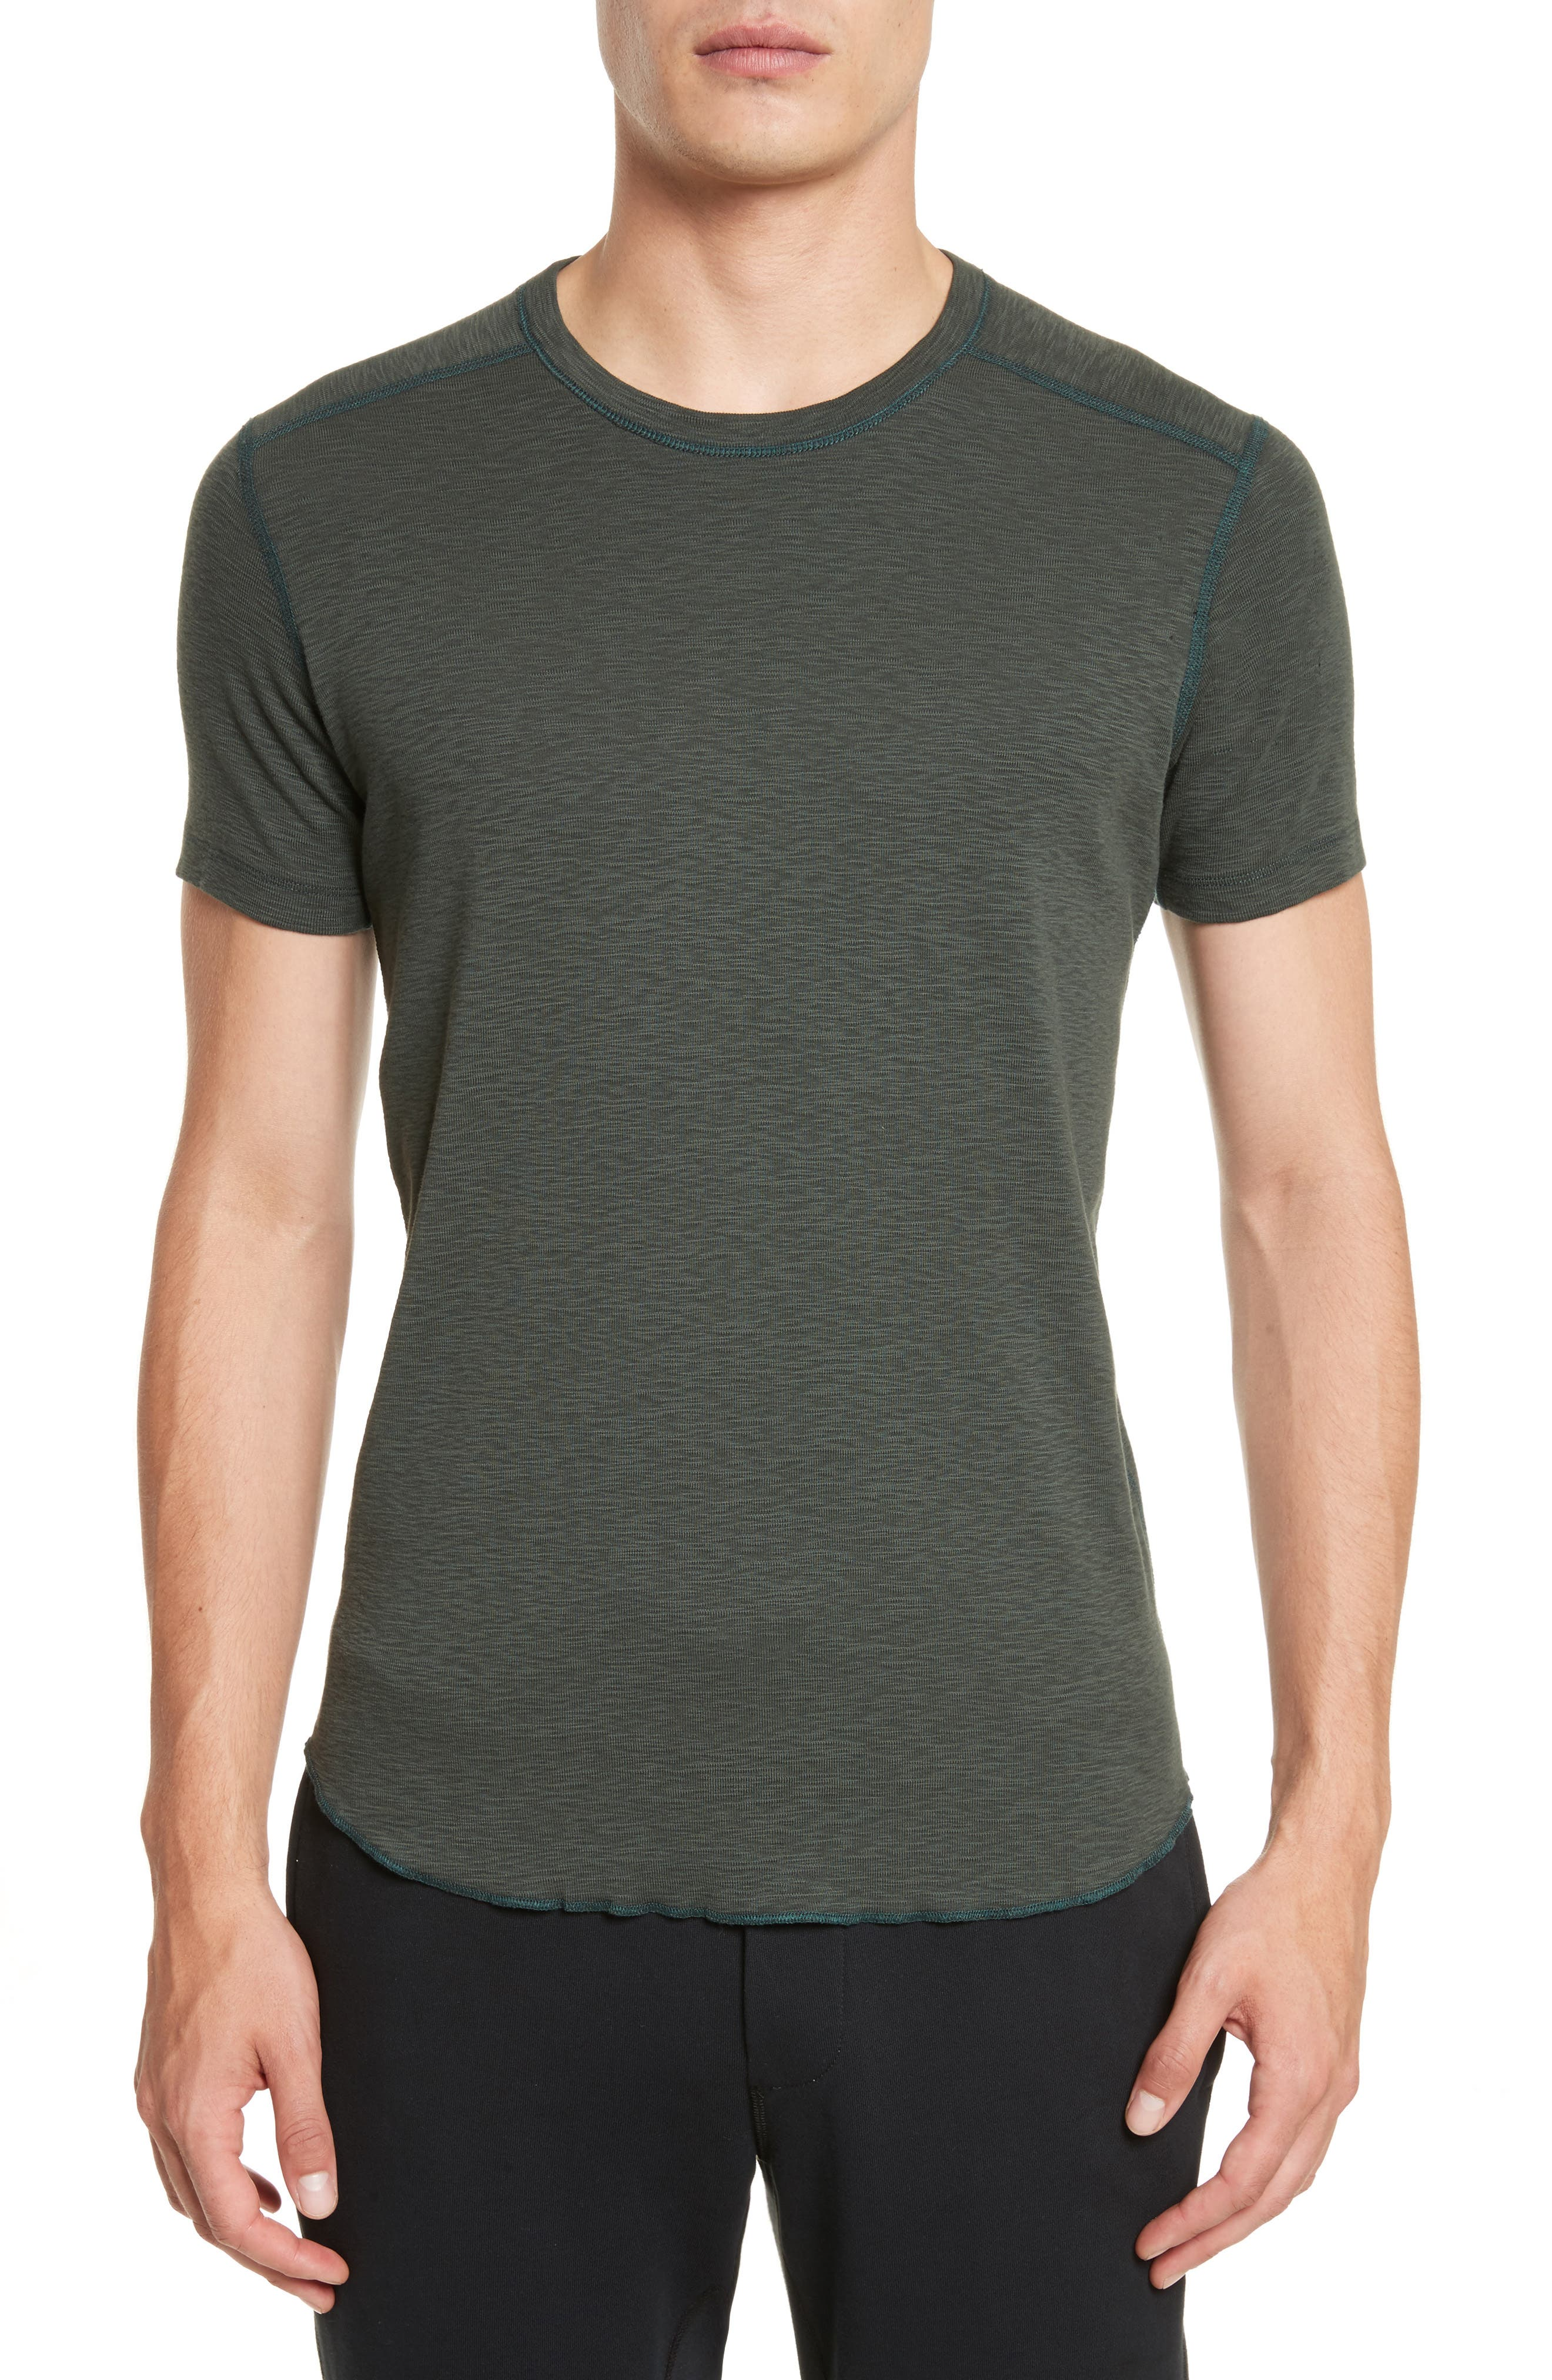 Alternate Image 1 Selected - wings + horns Ribbed Slub Cotton T-Shirt